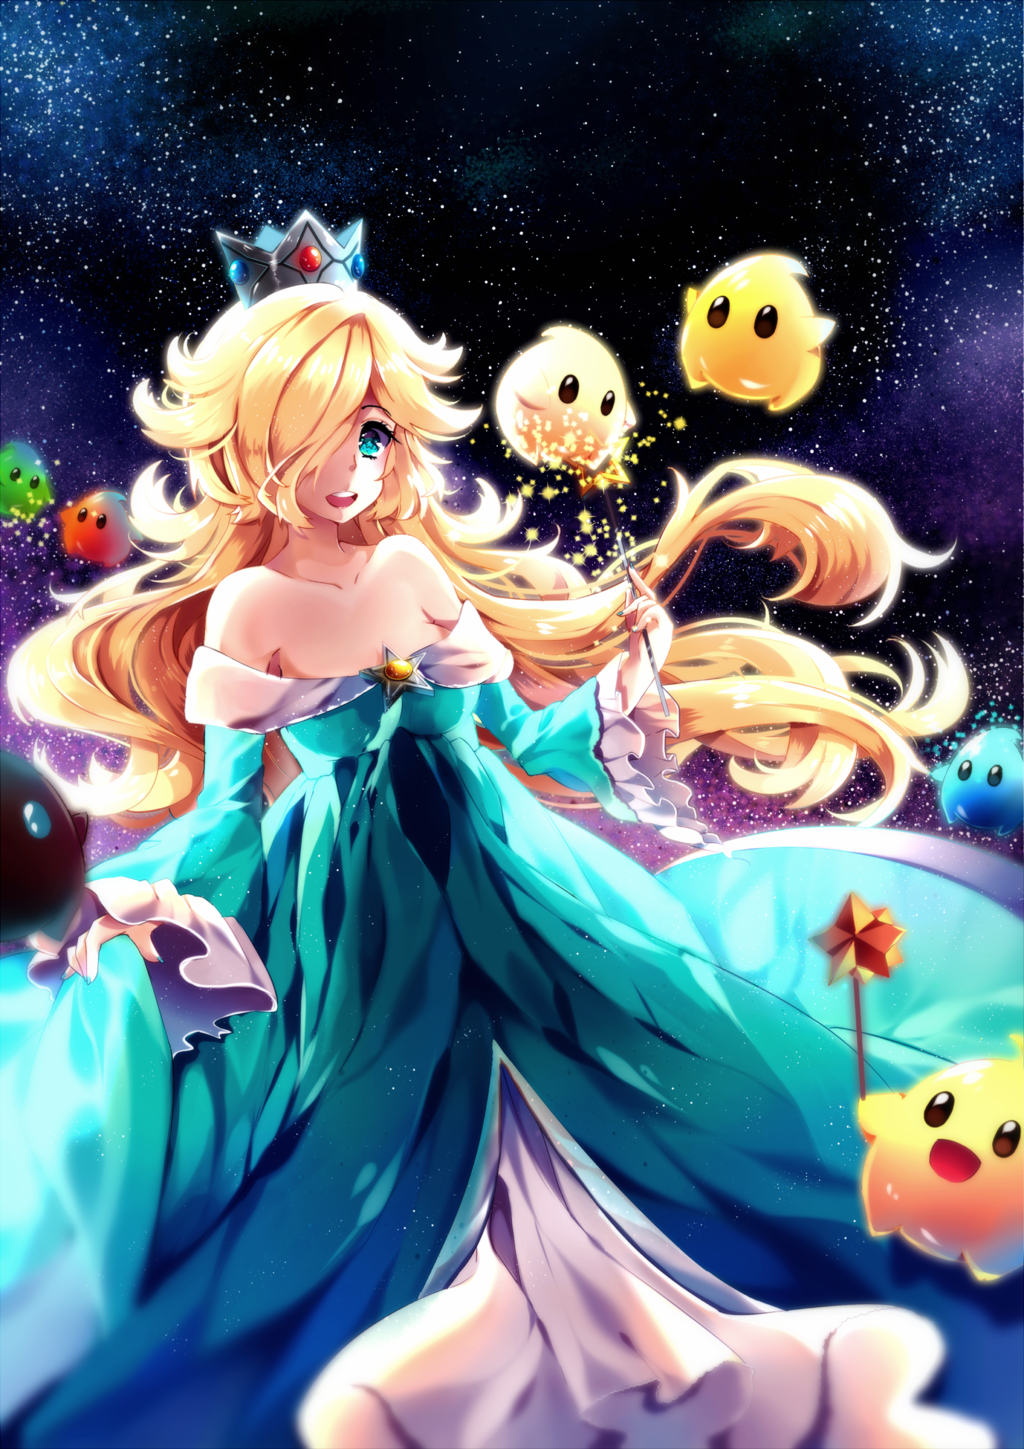 Rosalina And Luma Sai File Available By Maruuki -2928